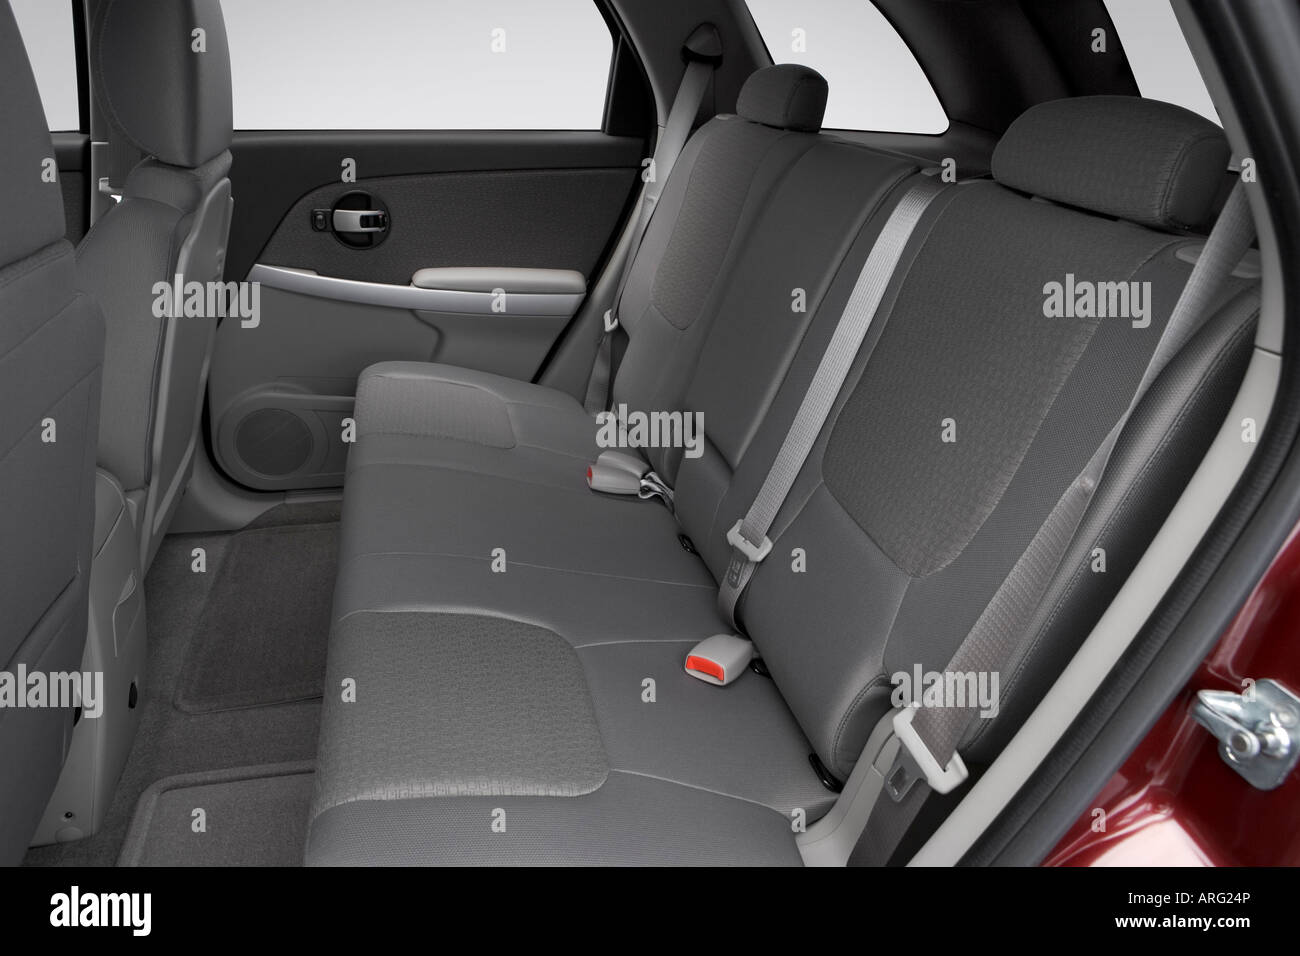 2007 chevrolet equinox lt in red - rear seats stock photo, royalty